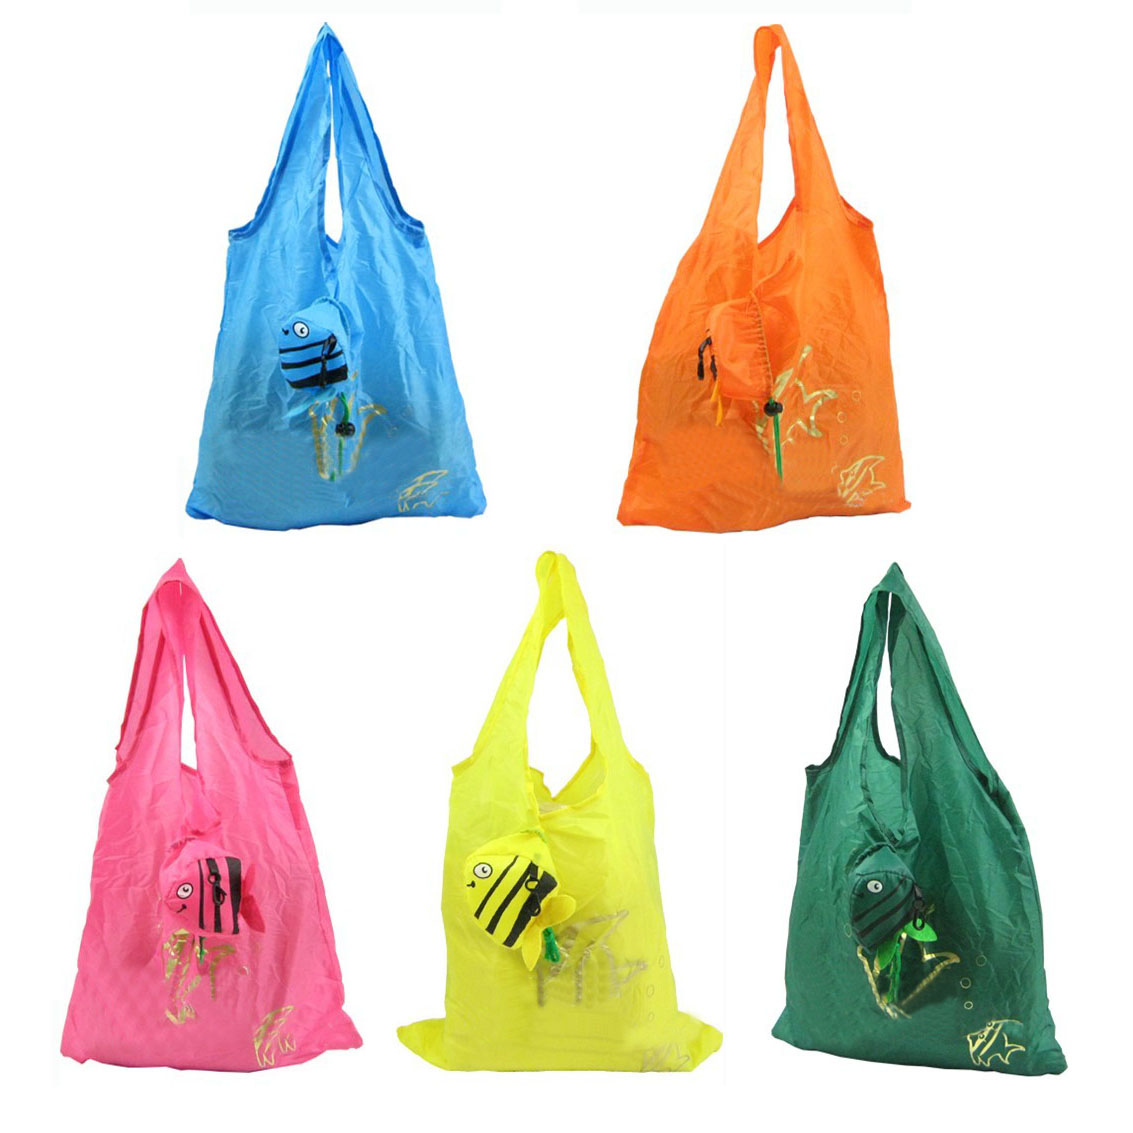 the cute octopus: Links: Cute Reusable Shopping Bags